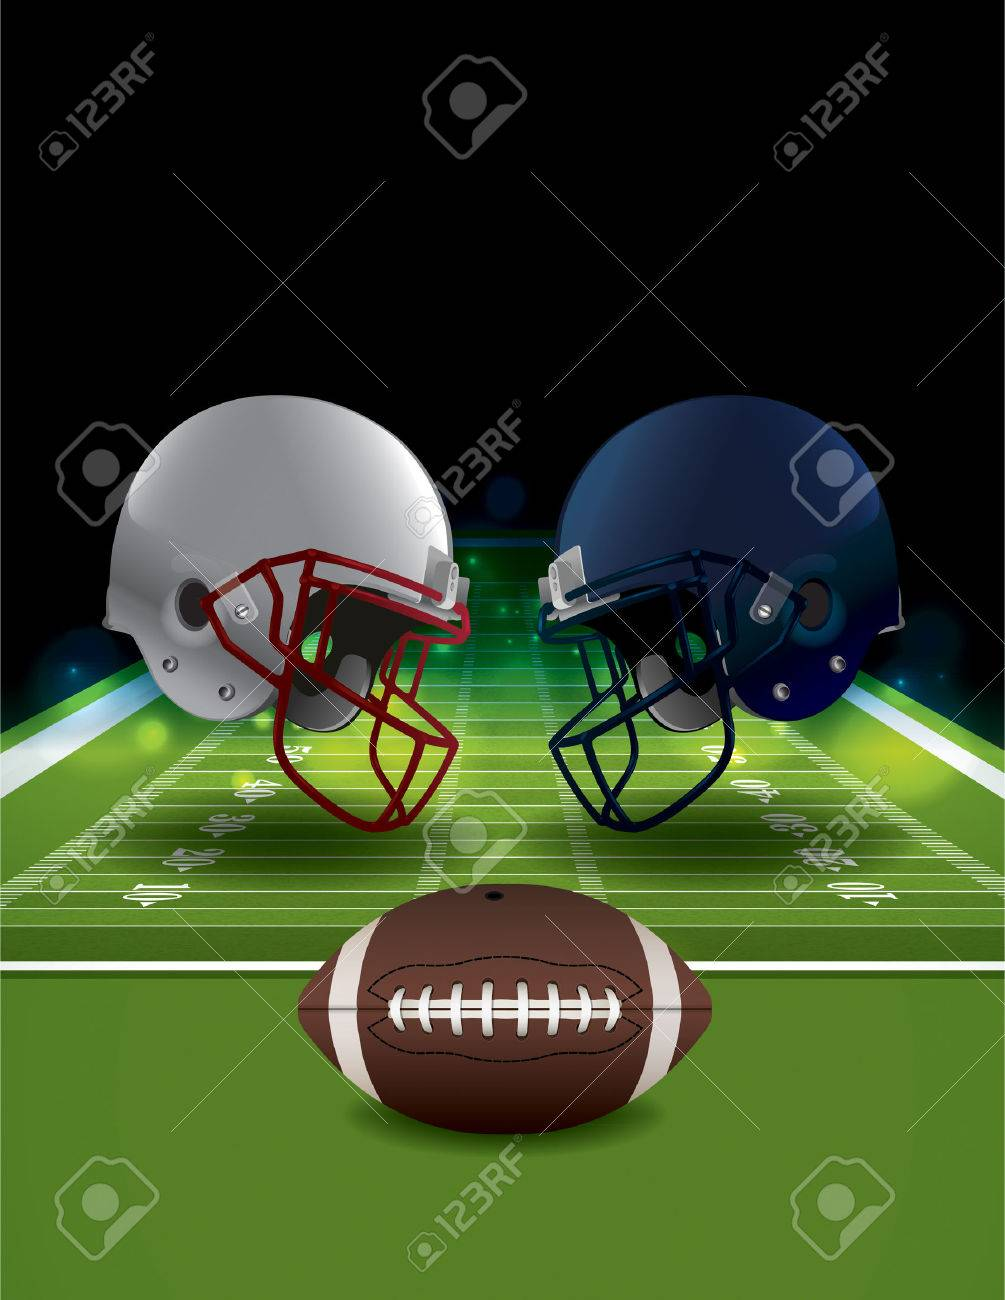 hight resolution of an illustration of american football helmets clashing on a field with a ball vector eps